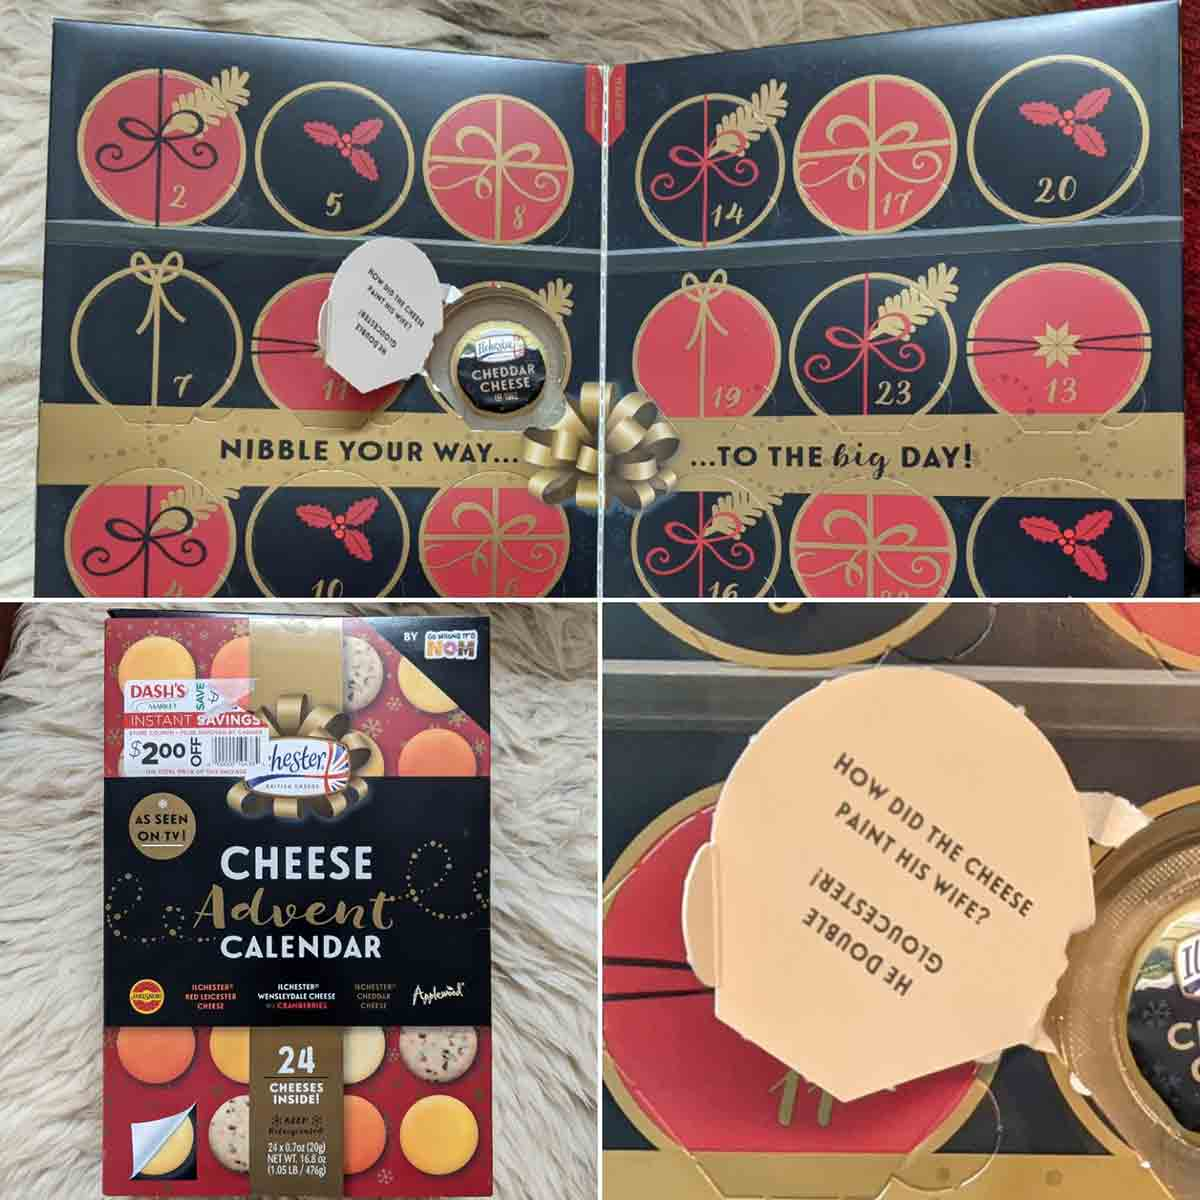 A cheese advent calendar. December 1 is open to show a small wheel of cheddar. The door also has a joke. How did the cheese paint his wife? He double Gloucester!